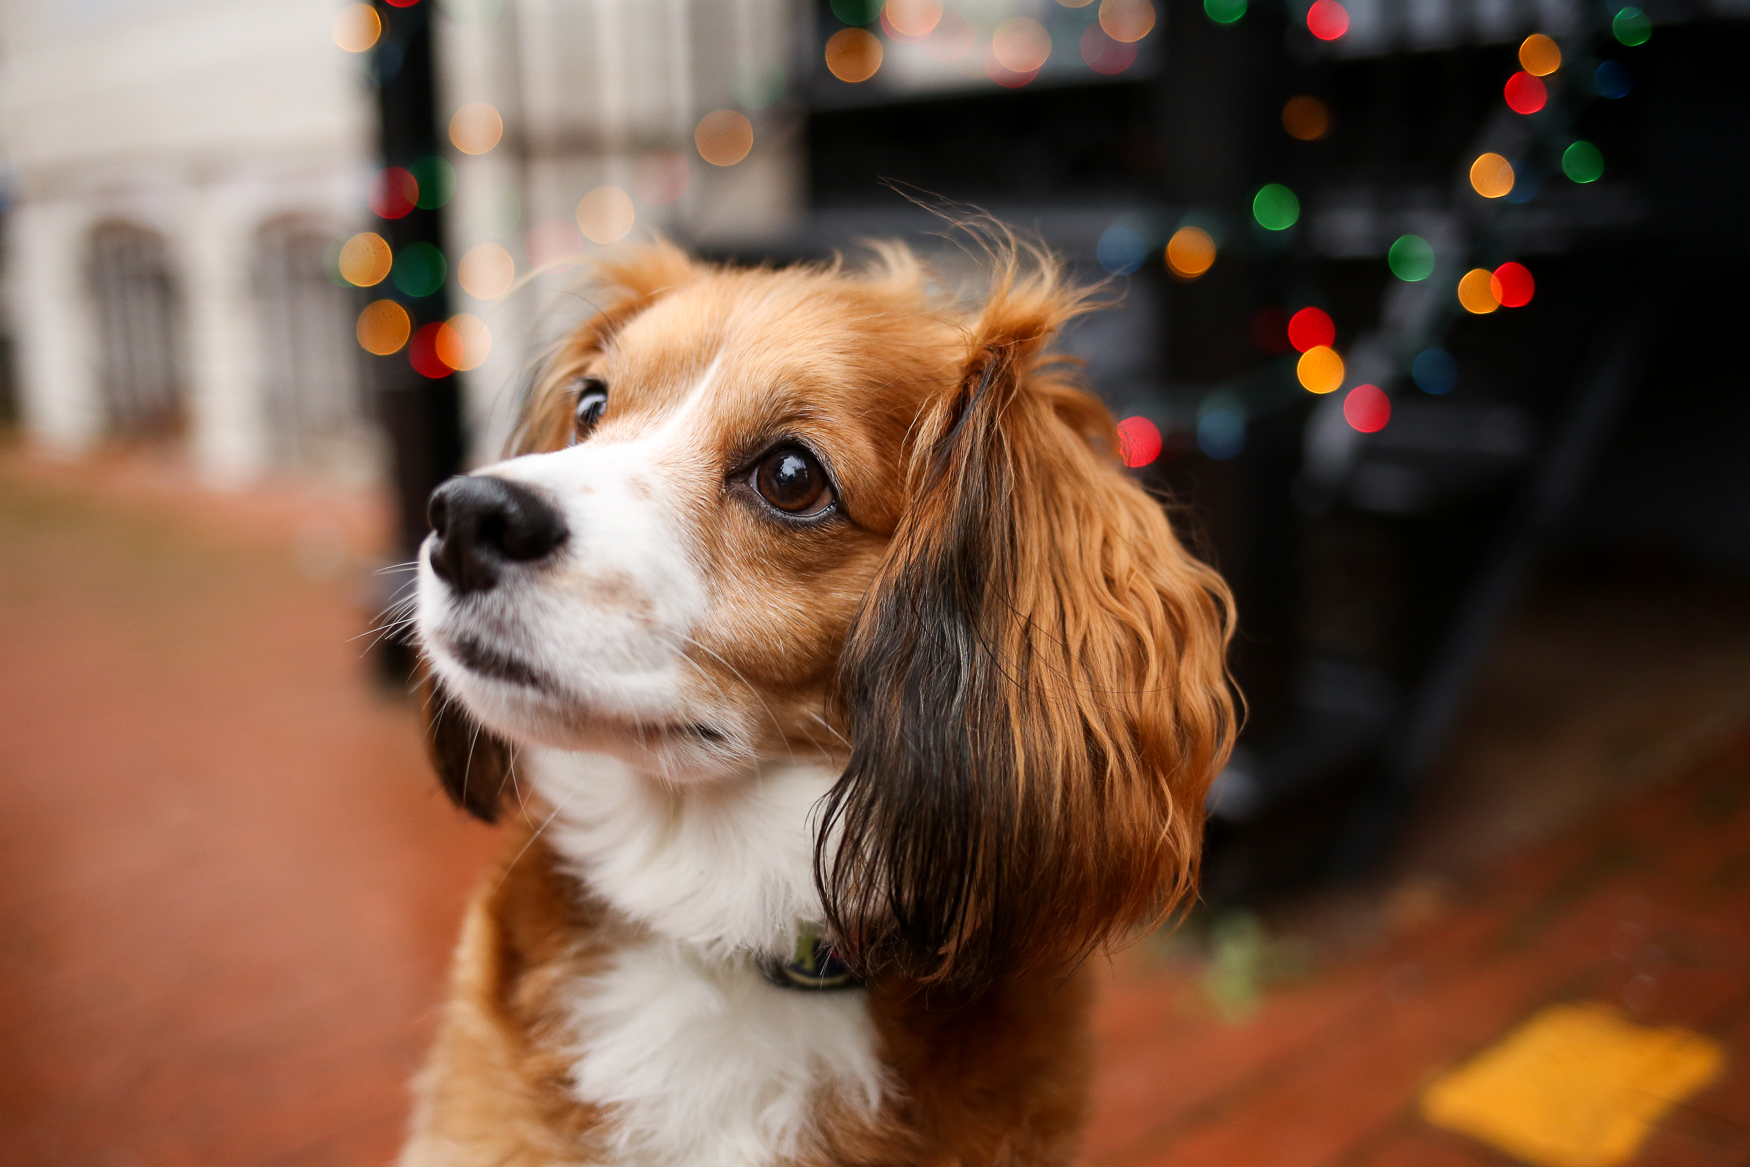 Meet Penny, a 6.5-year-old Cavalier King Charles/Cocker Spaniel mix. Penny has been living with her mom since 2013, when she adopted Penny during her senior year of college. Mom went to a rescue group in her neighborhood &quot;just to look&quot; and the rest was history! Penny is obsessed with her glow-in-the-dark Chuck-it ball and playing fetch, being a cuddle monster and sitting on patios with her parents. She hates salmon and being woken up early-- she would sleep all day if she had it her way. Penny is a serious squirrel hunter, and goes well beyond chasing them up trees, to the point where she will take a running start and jump several feet up the tree trunk and try to grab on with her paws! You can follow all of Penny's adventures on her Insta: @pennythedcpup. If you're interested in having your pup featured, drop us a line at aandrade@dcrefined.com (Image: Amanda Andrade-Rhoades/DC Refined)<p></p><p></p>